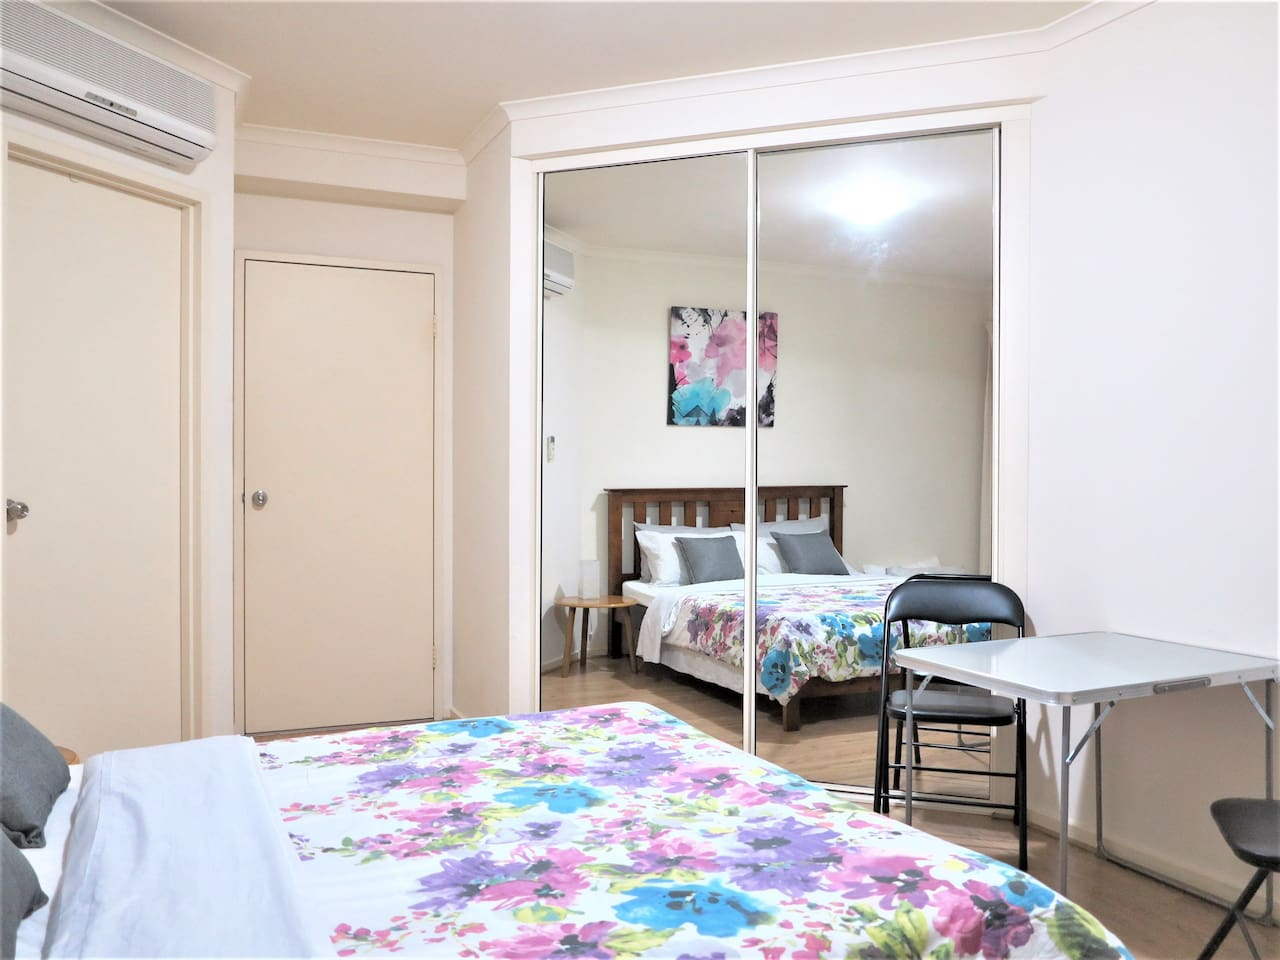 The room with a nice queen size bed and ensuite